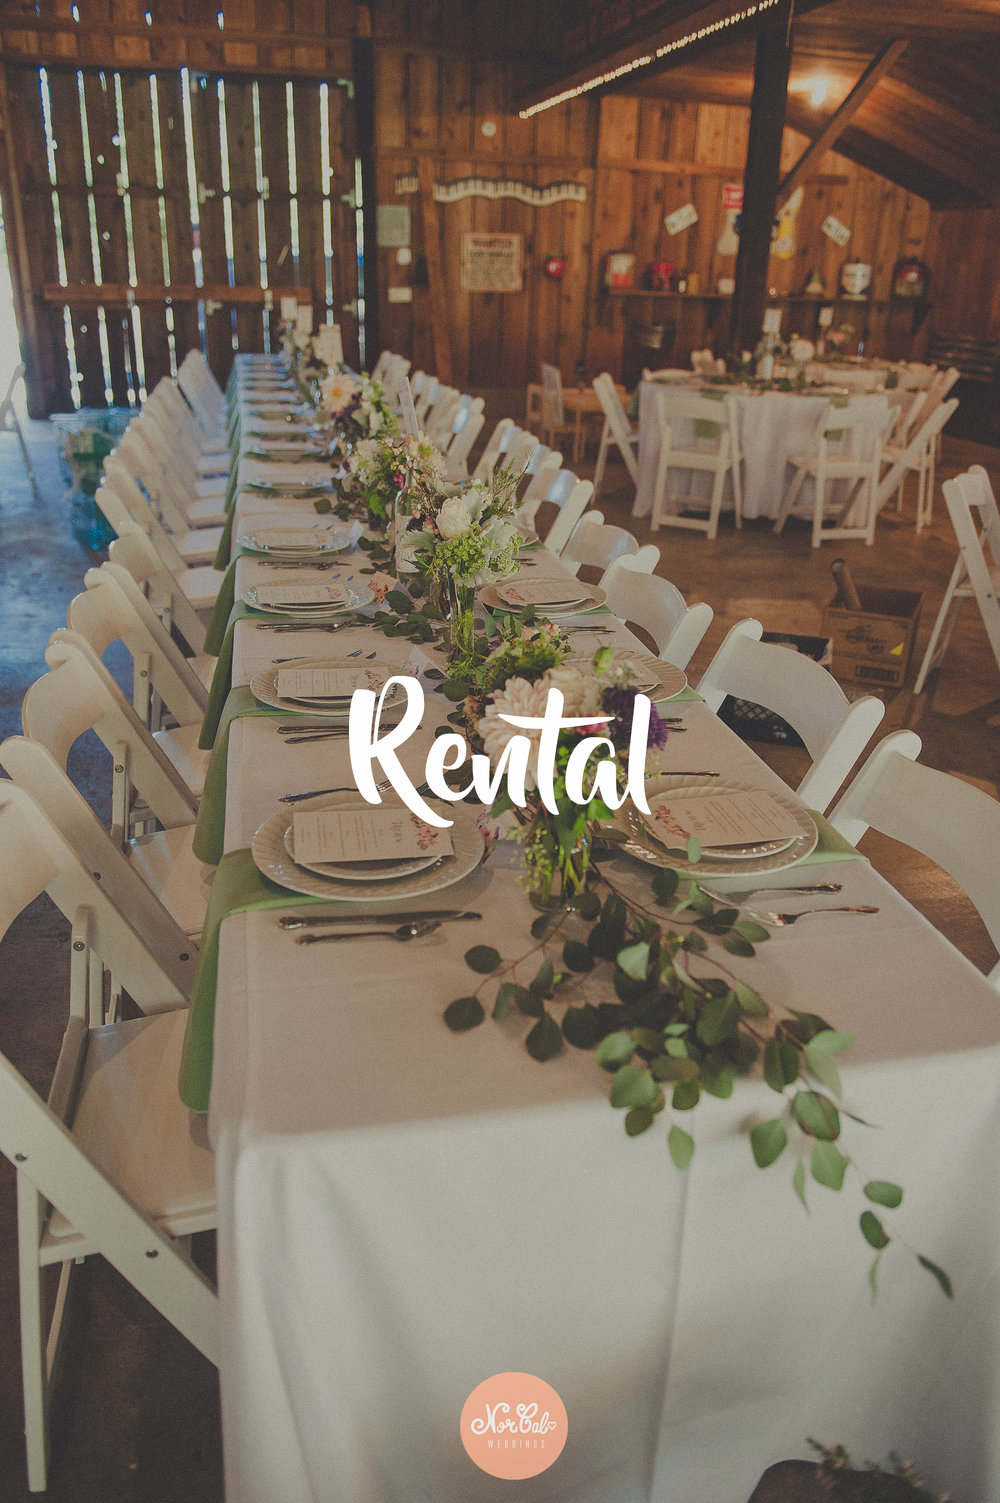 NorCal Weddings Rental Services.jpg